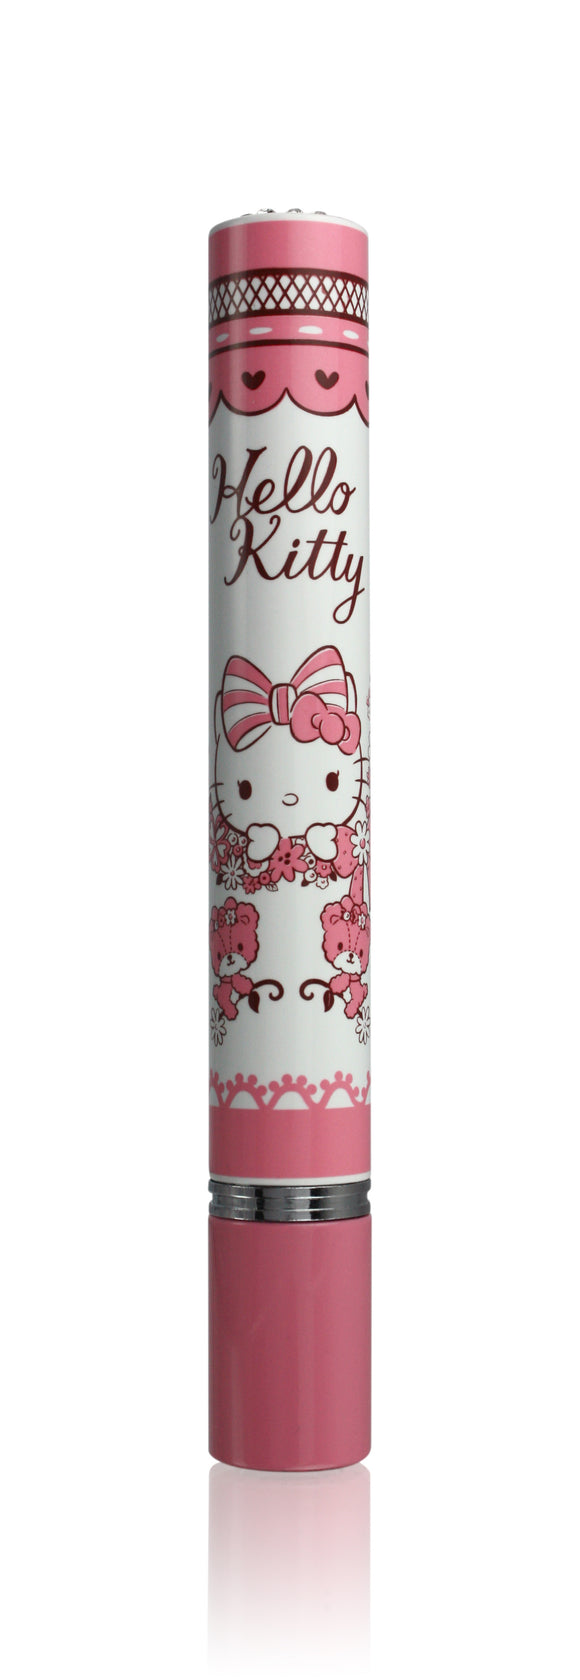 Hello Kitty Perfume Atomizer P760HK02